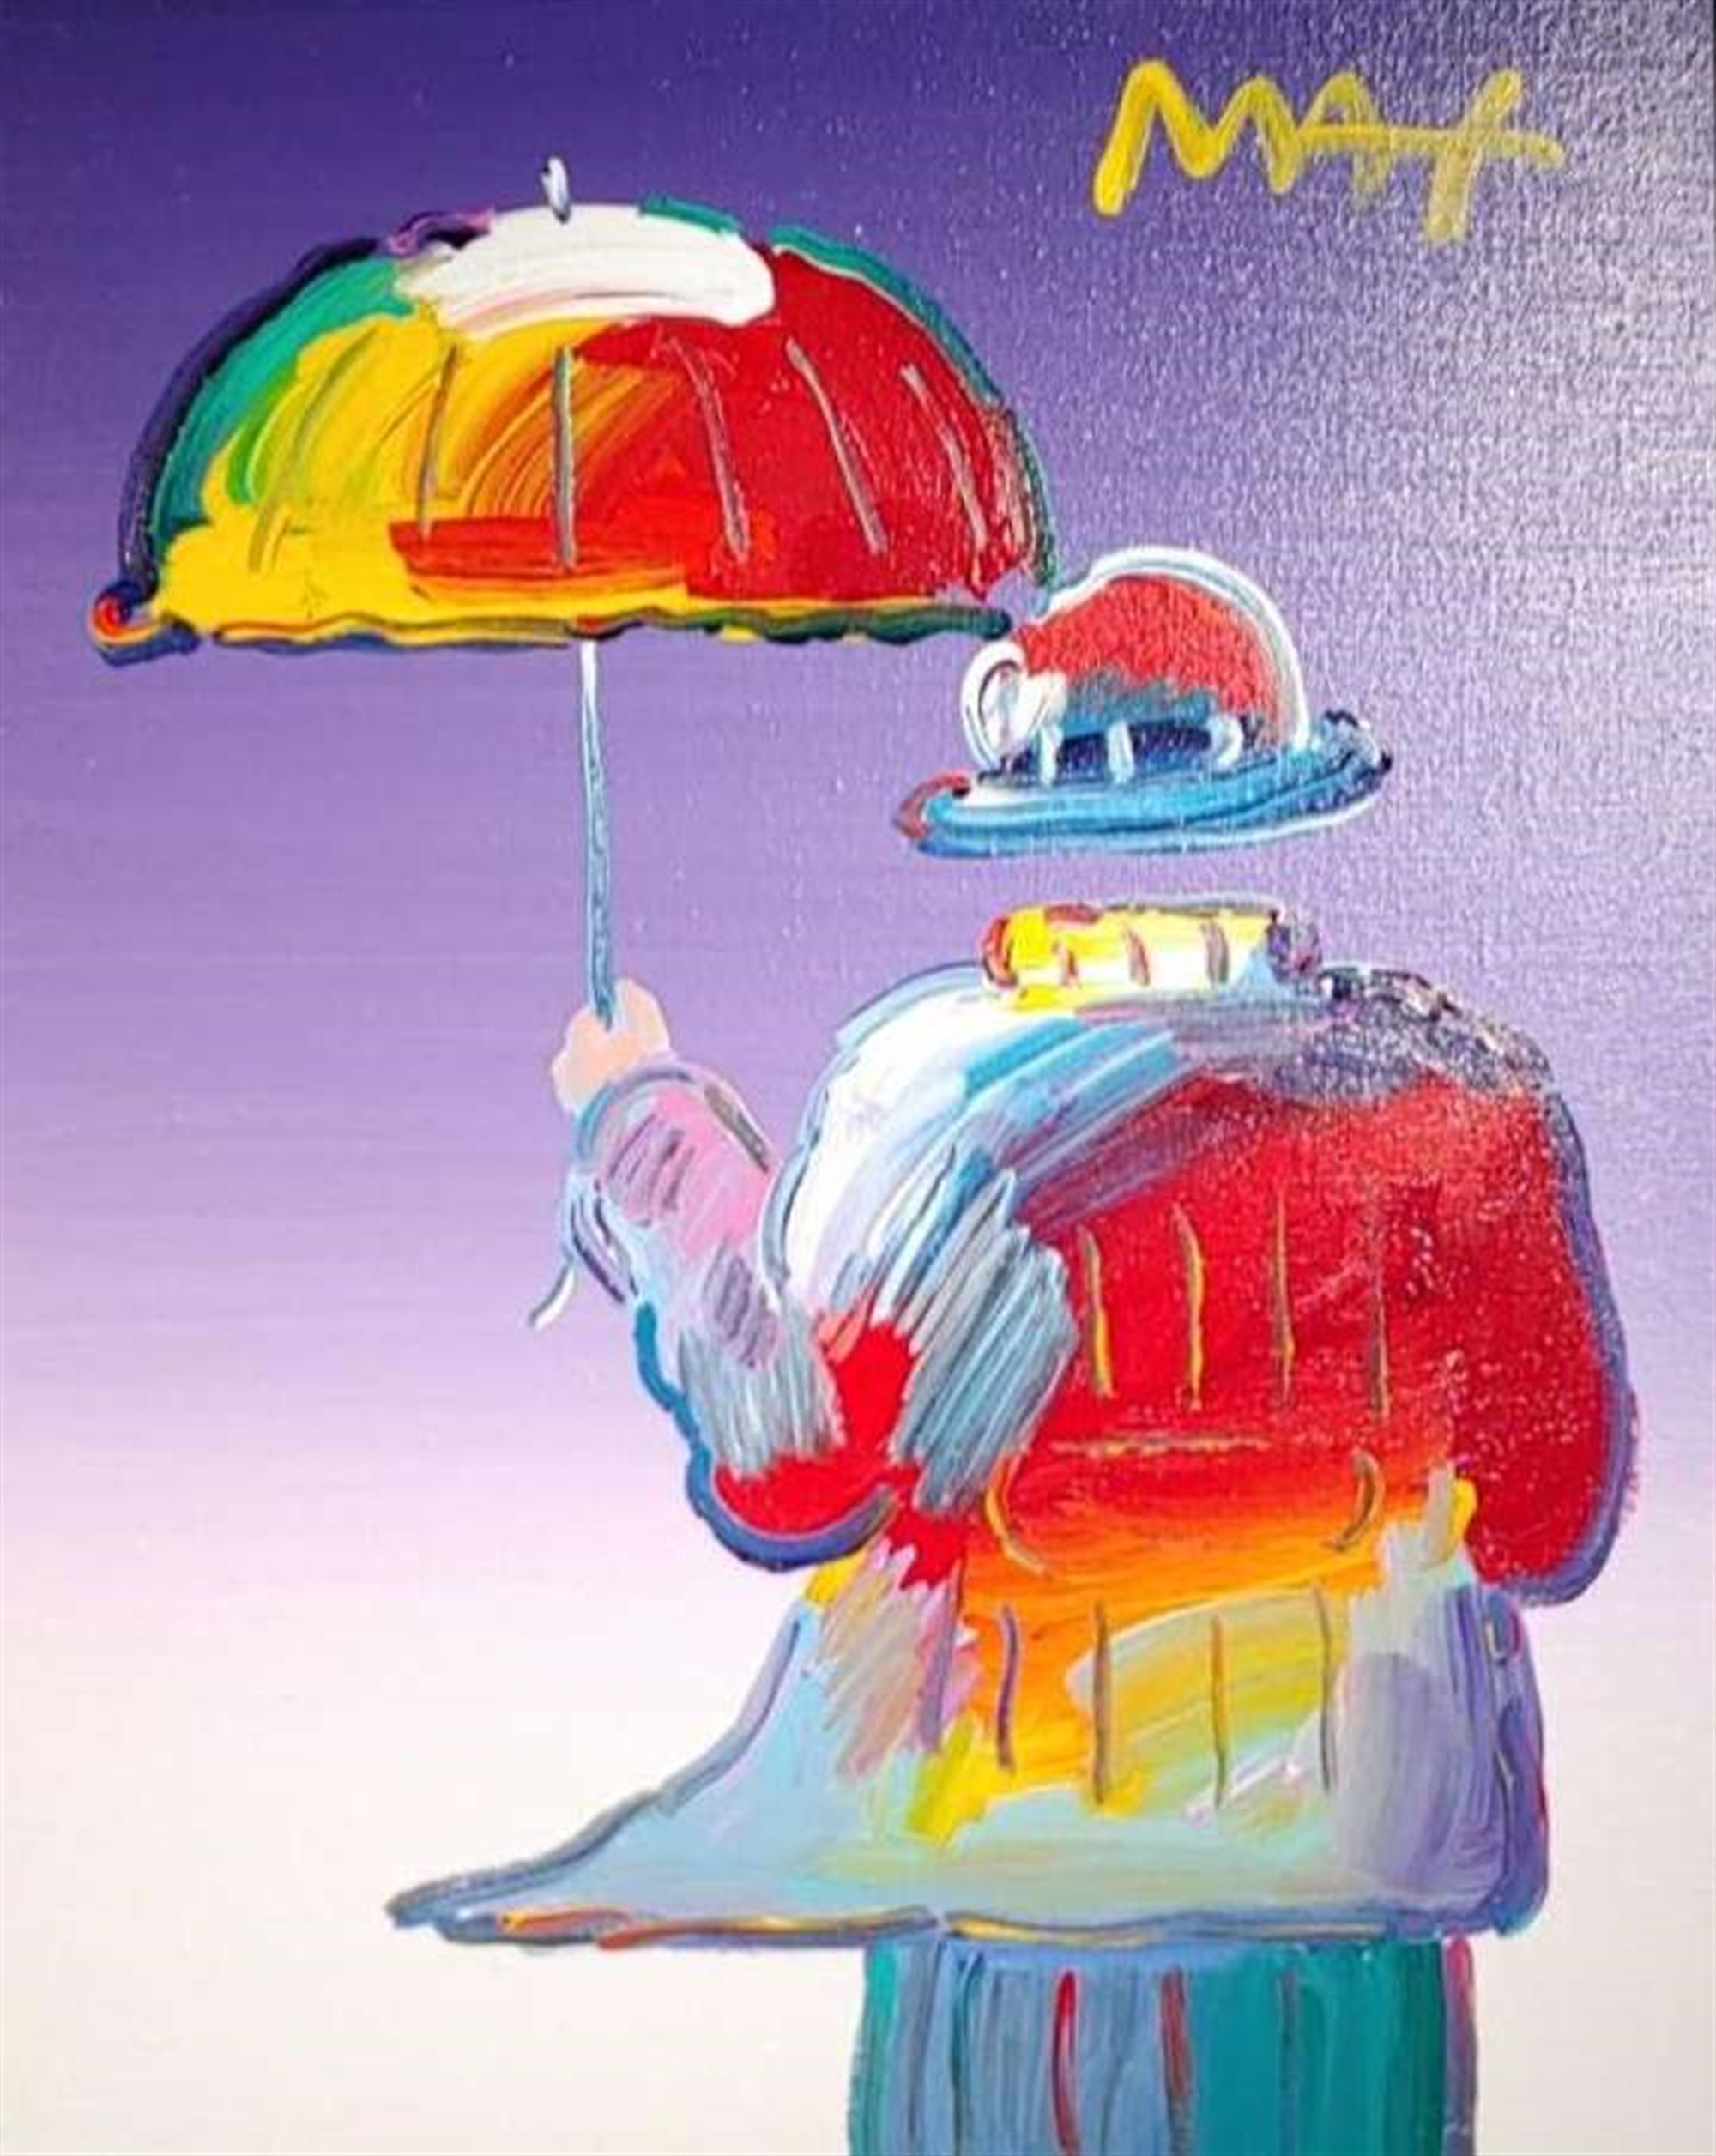 Umbrella Man on Purple by Peter Max